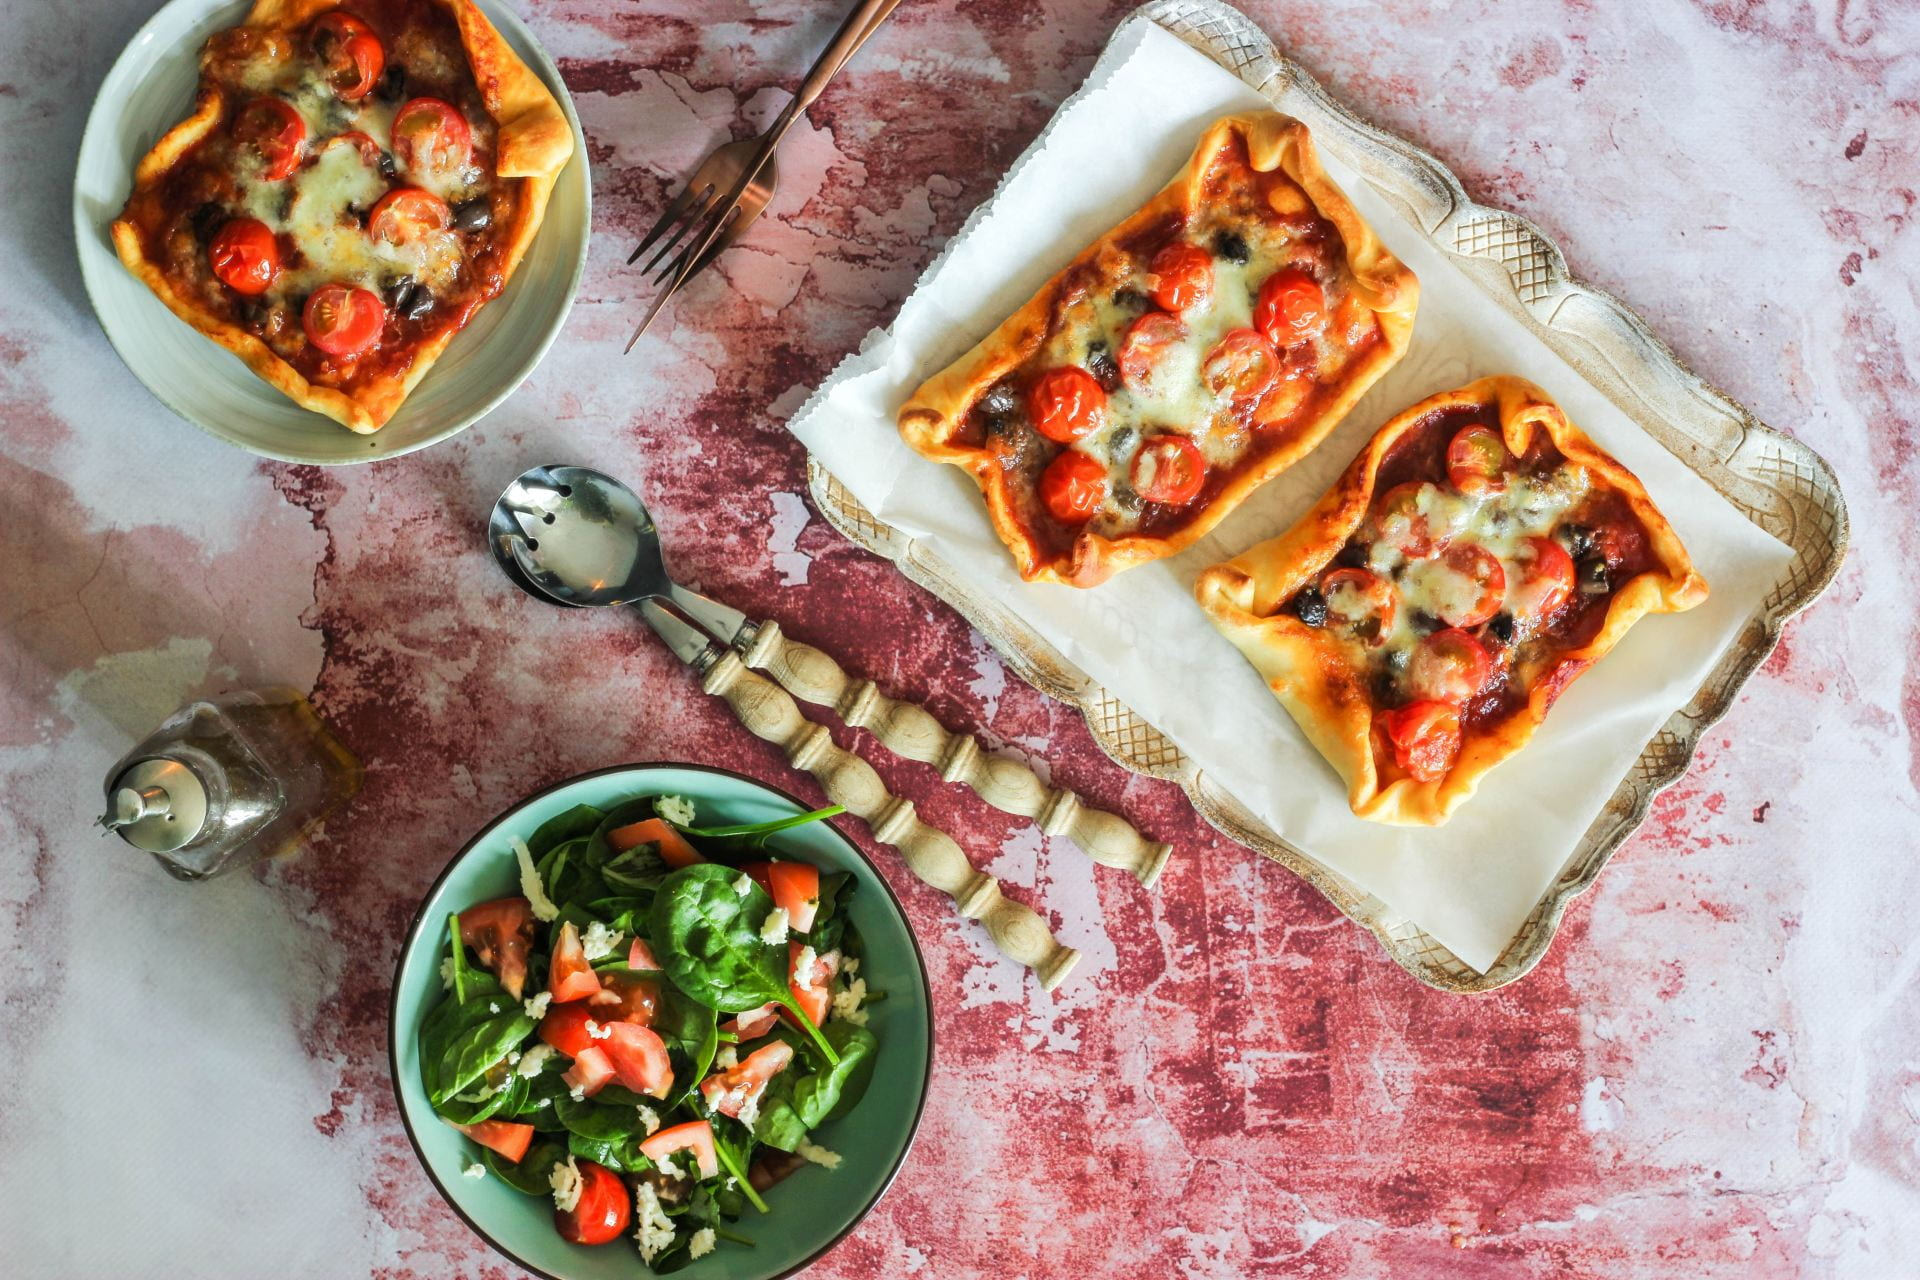 Home made pizza slices with a salad